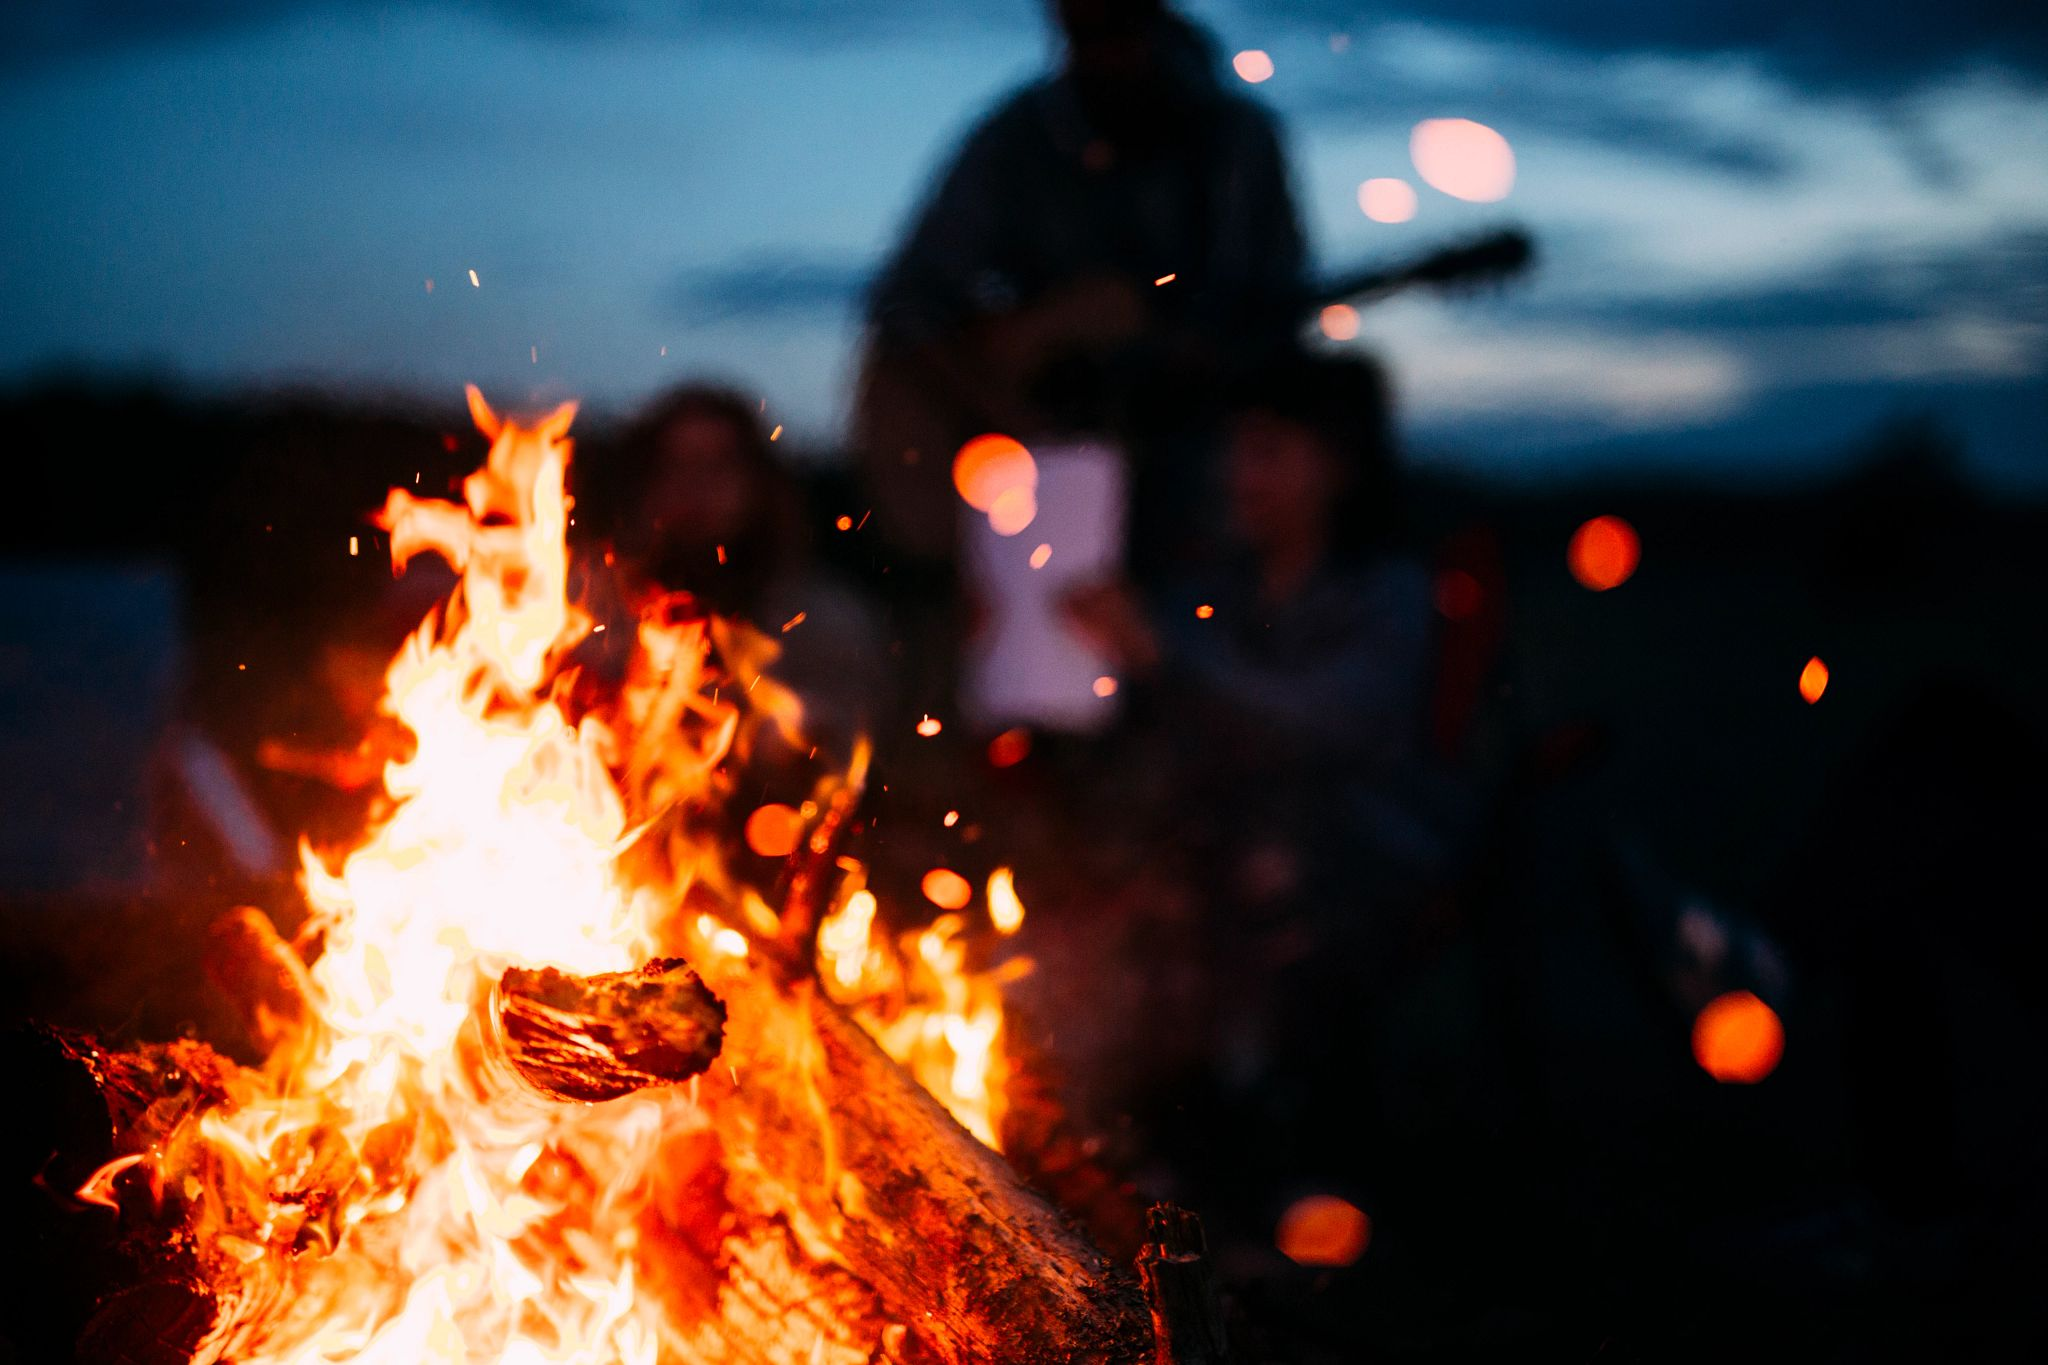 An image of a campfire at night.